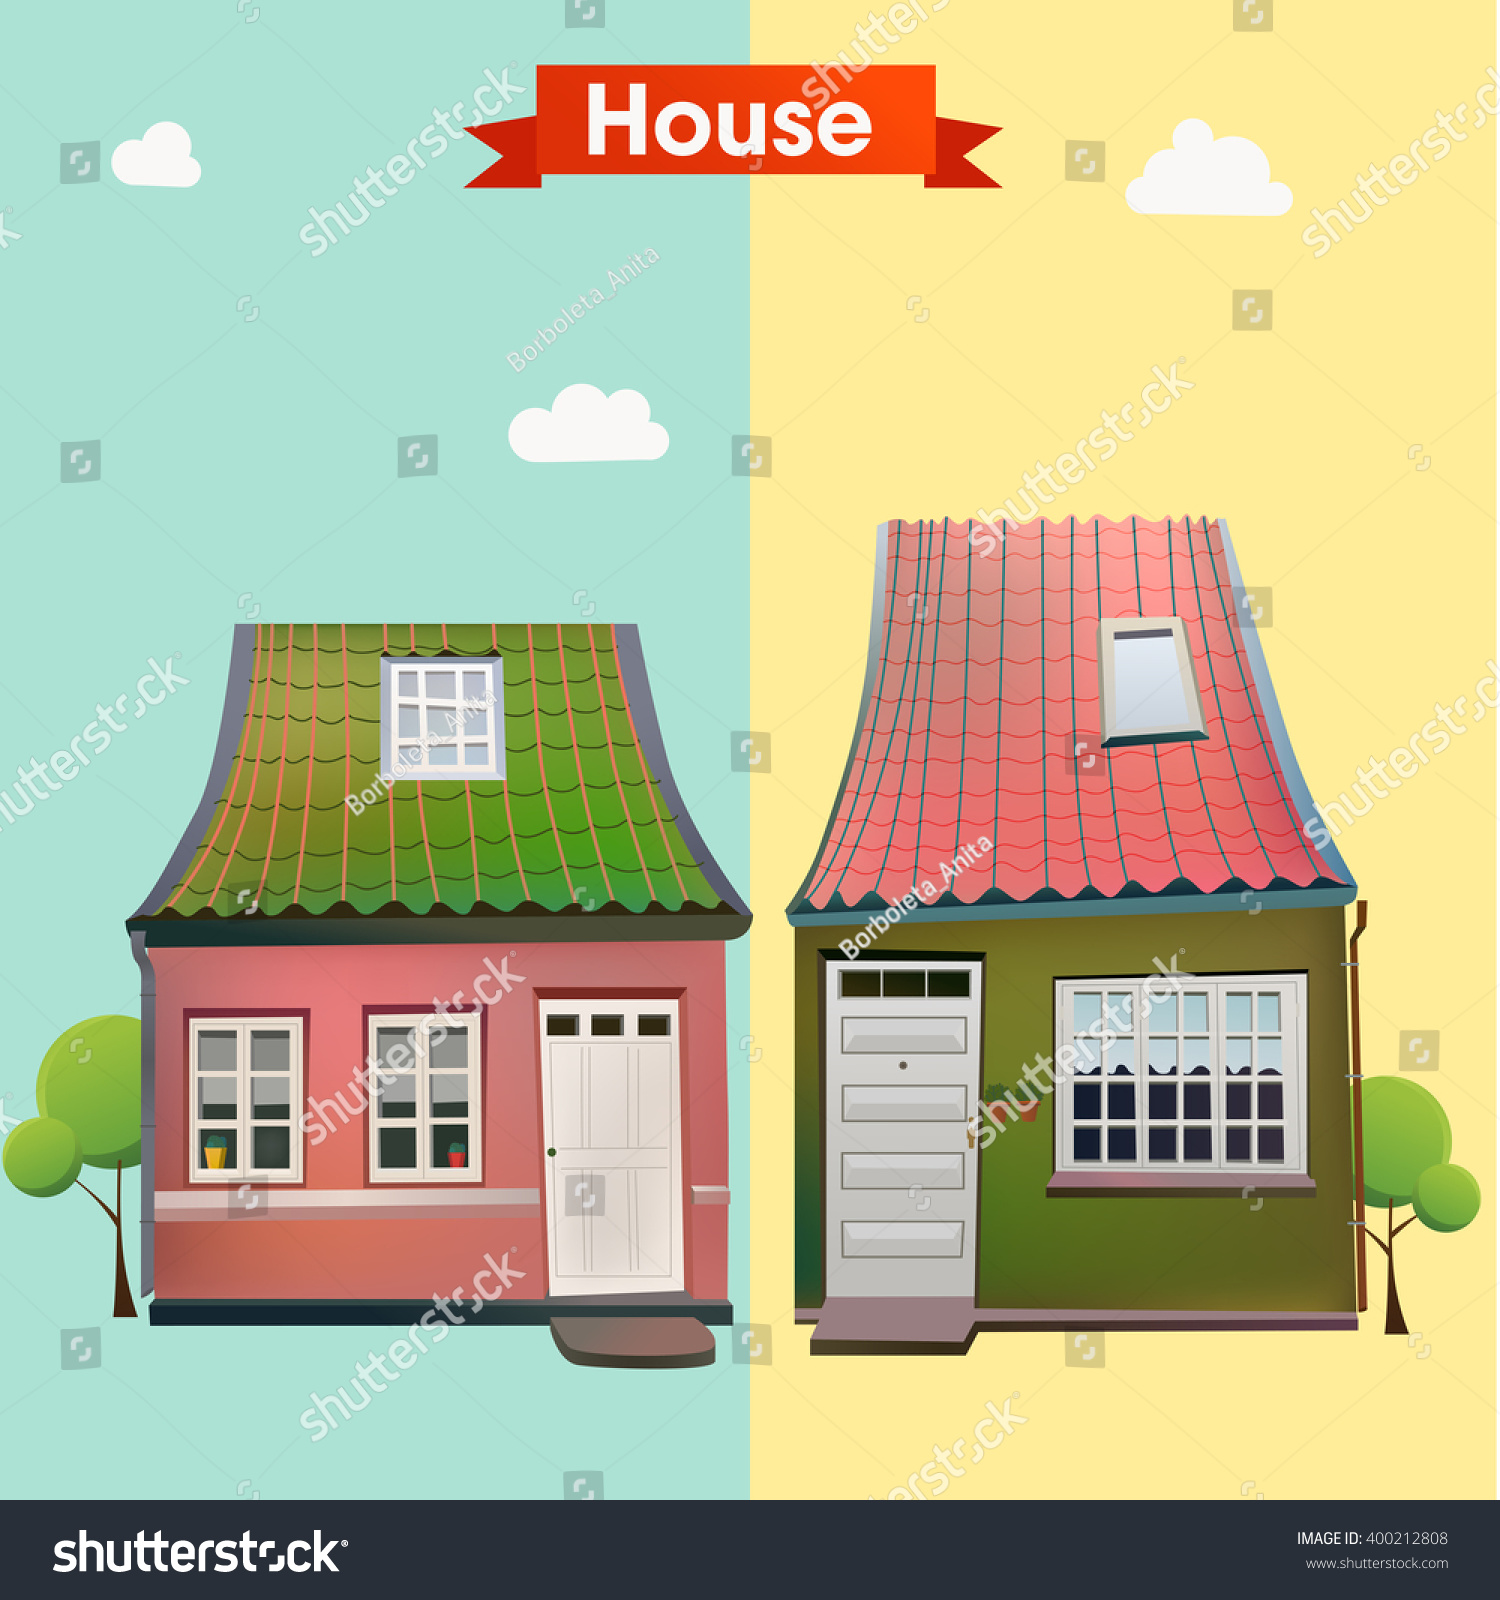 Renew.Housebeautiful.Com different variants house beautiful european houses stock vector